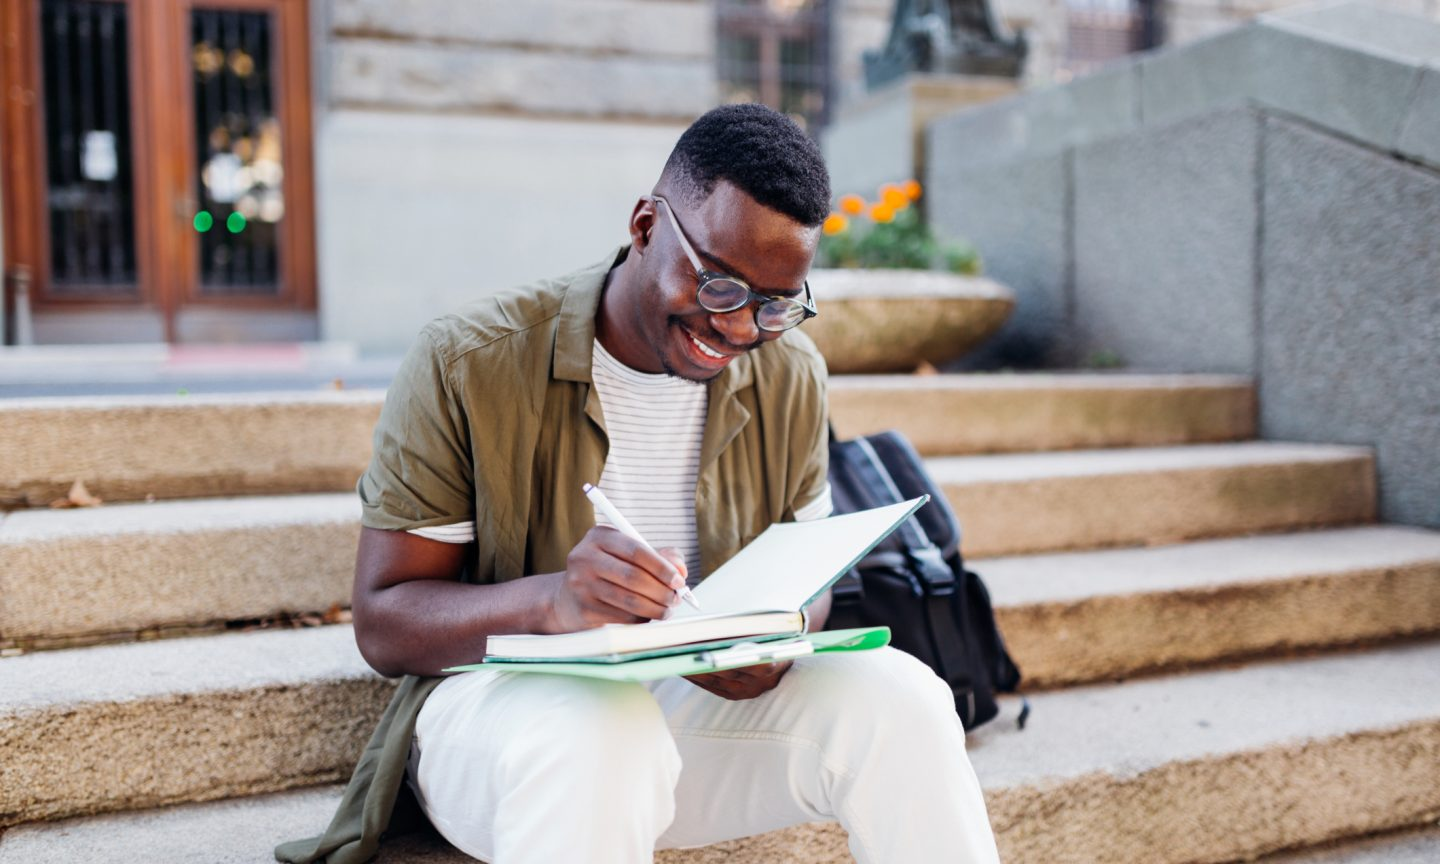 5 Things to Consider When Picking a College in the COVID-19 Era - NerdWallet